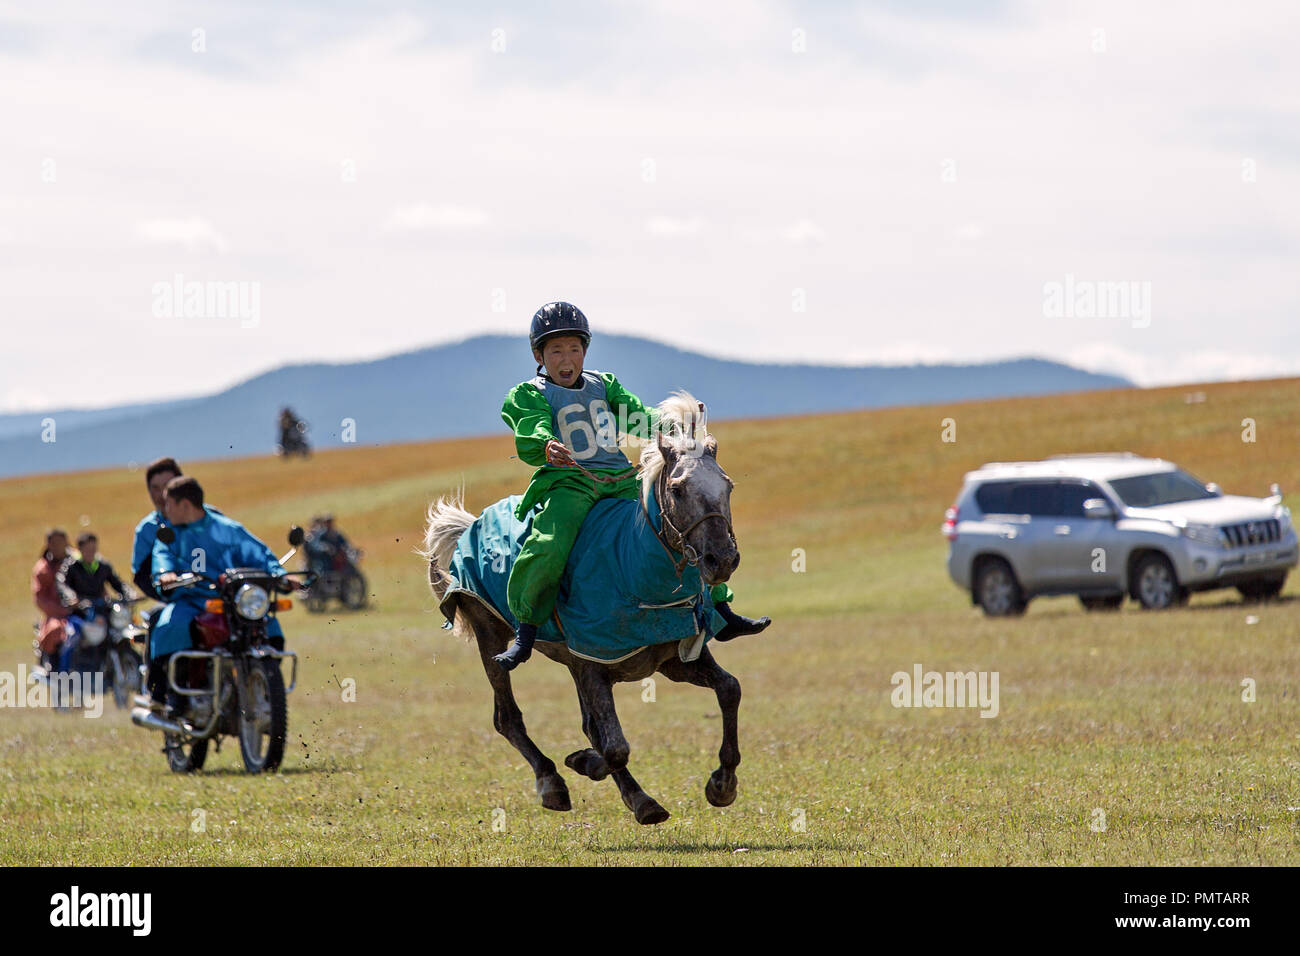 Young boy without shoes is riding a horse participant in the horsemanship competition of the Naadam Festival, Khatgal, Mongolia - Stock Image